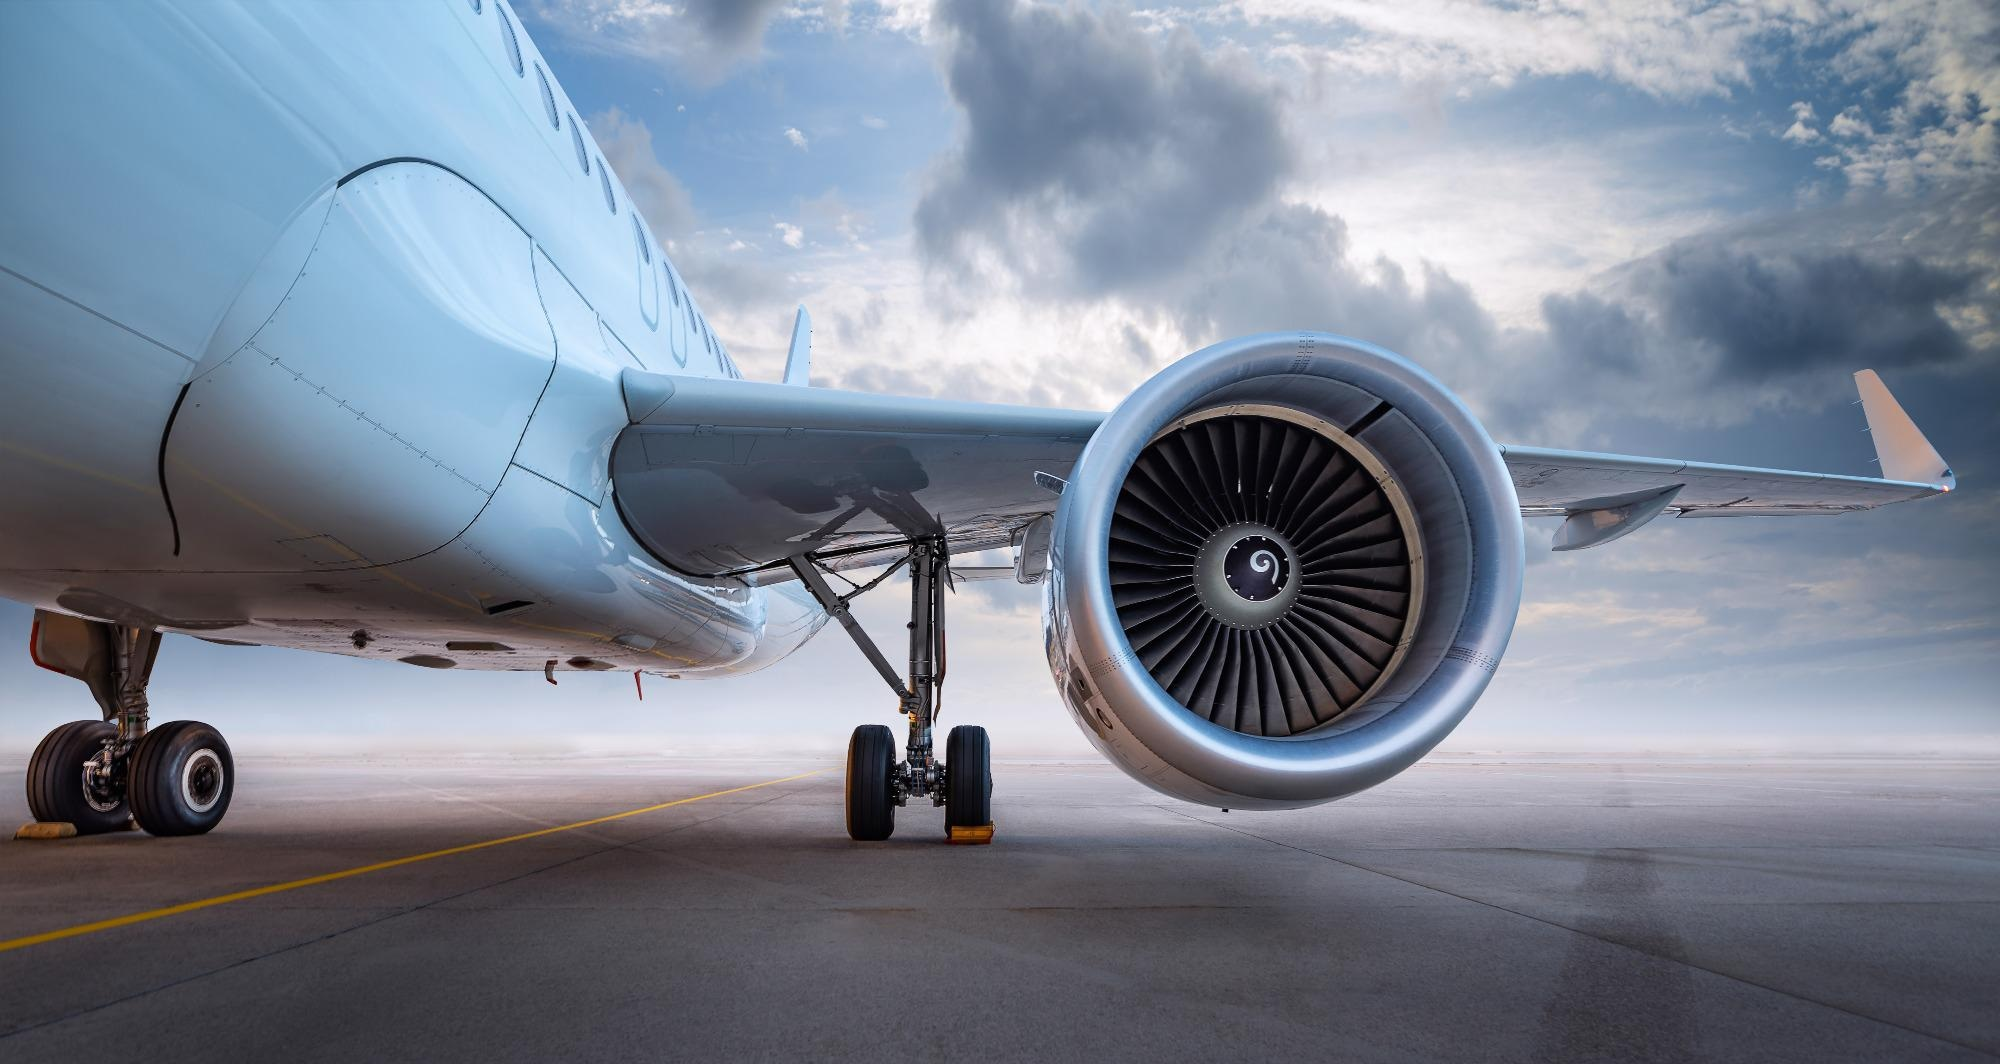 Simulation Model for Faster Prediction of Solidification on Jet Engines.